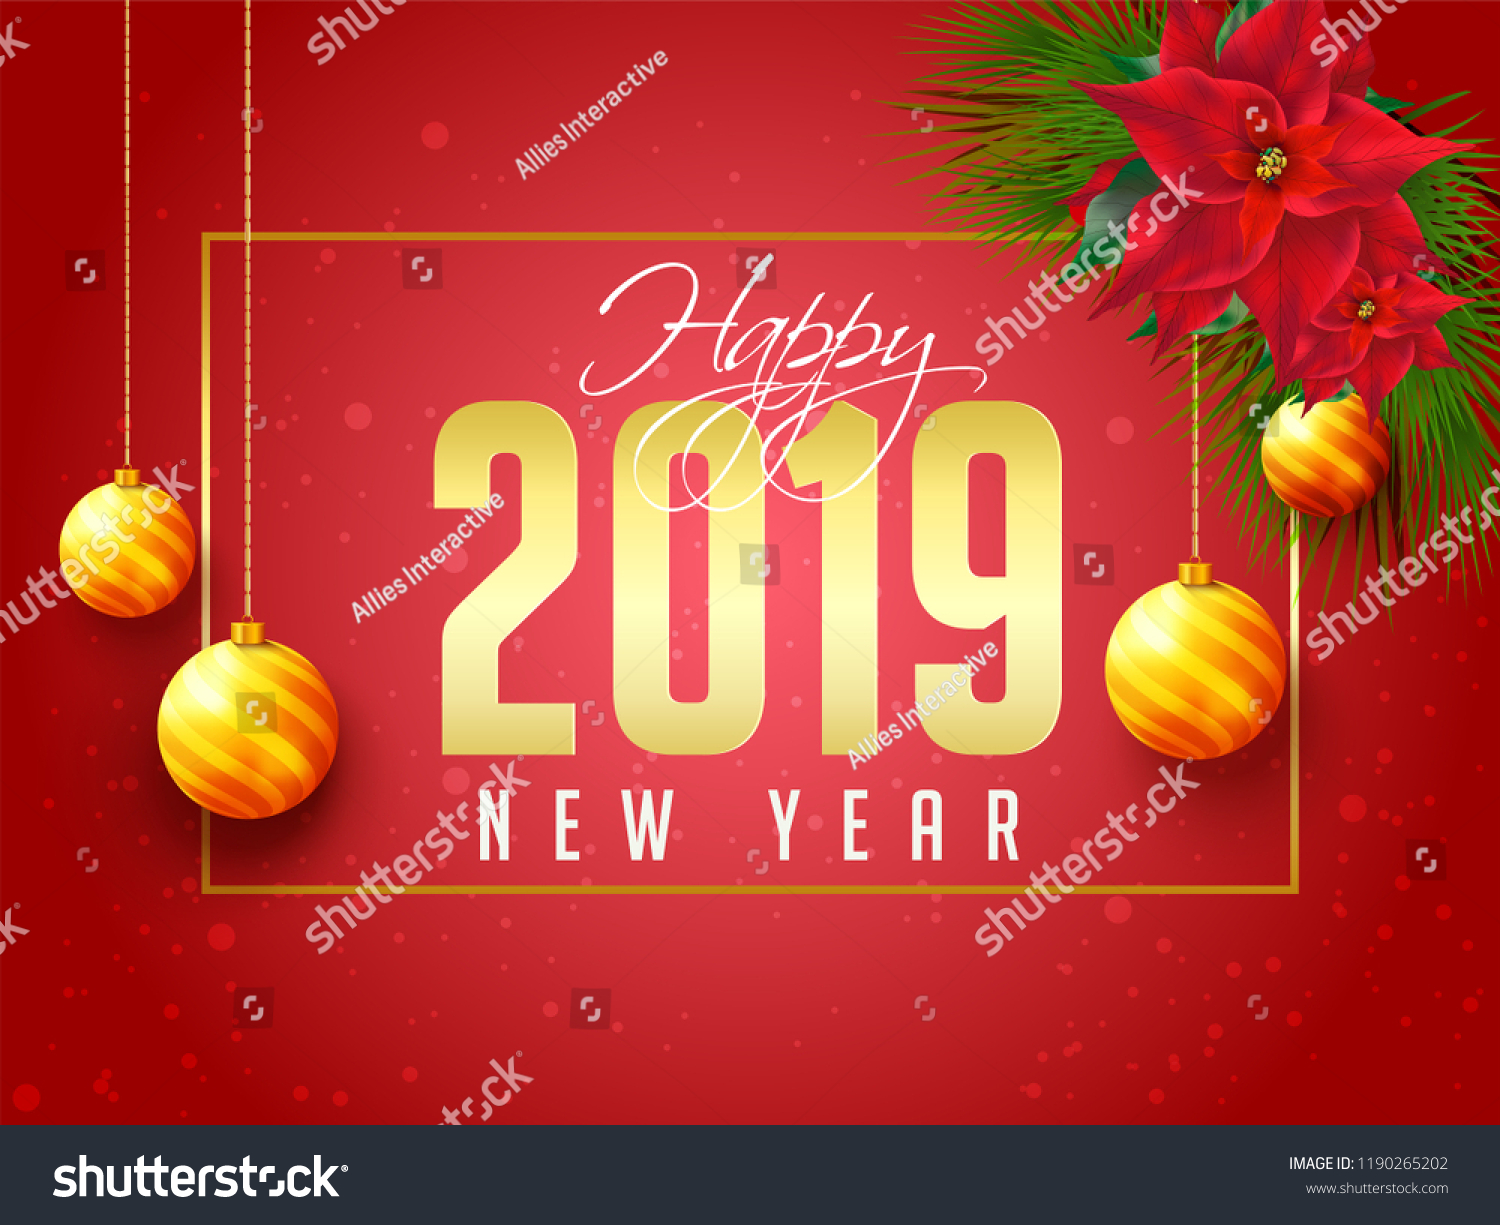 happy new year poster or template design with lettering of 2019 flowers and decorative bauble